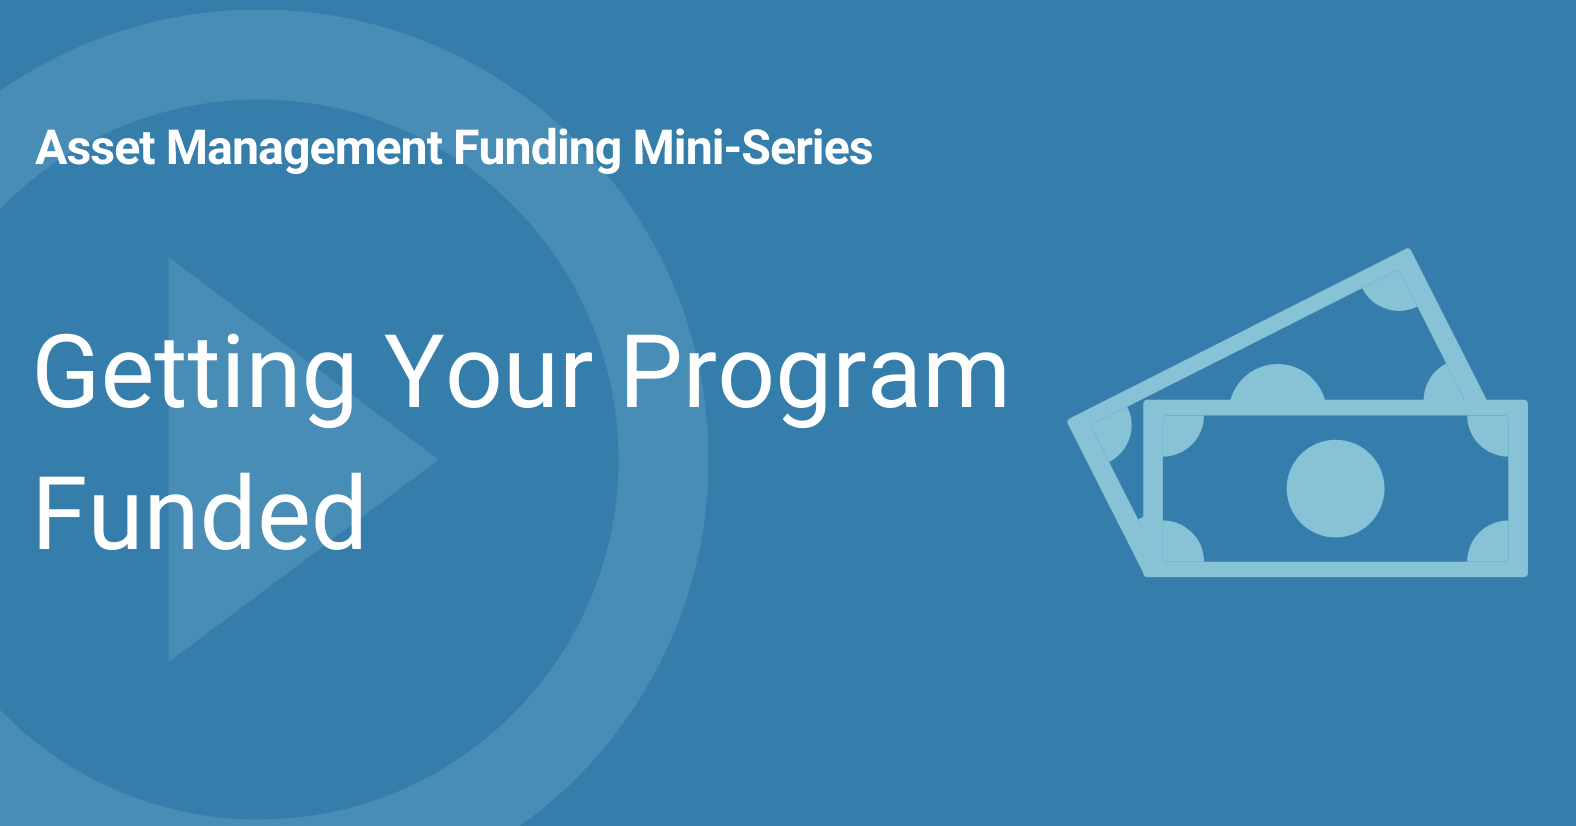 Asset Management Funding Mini-Series Getting your program funded